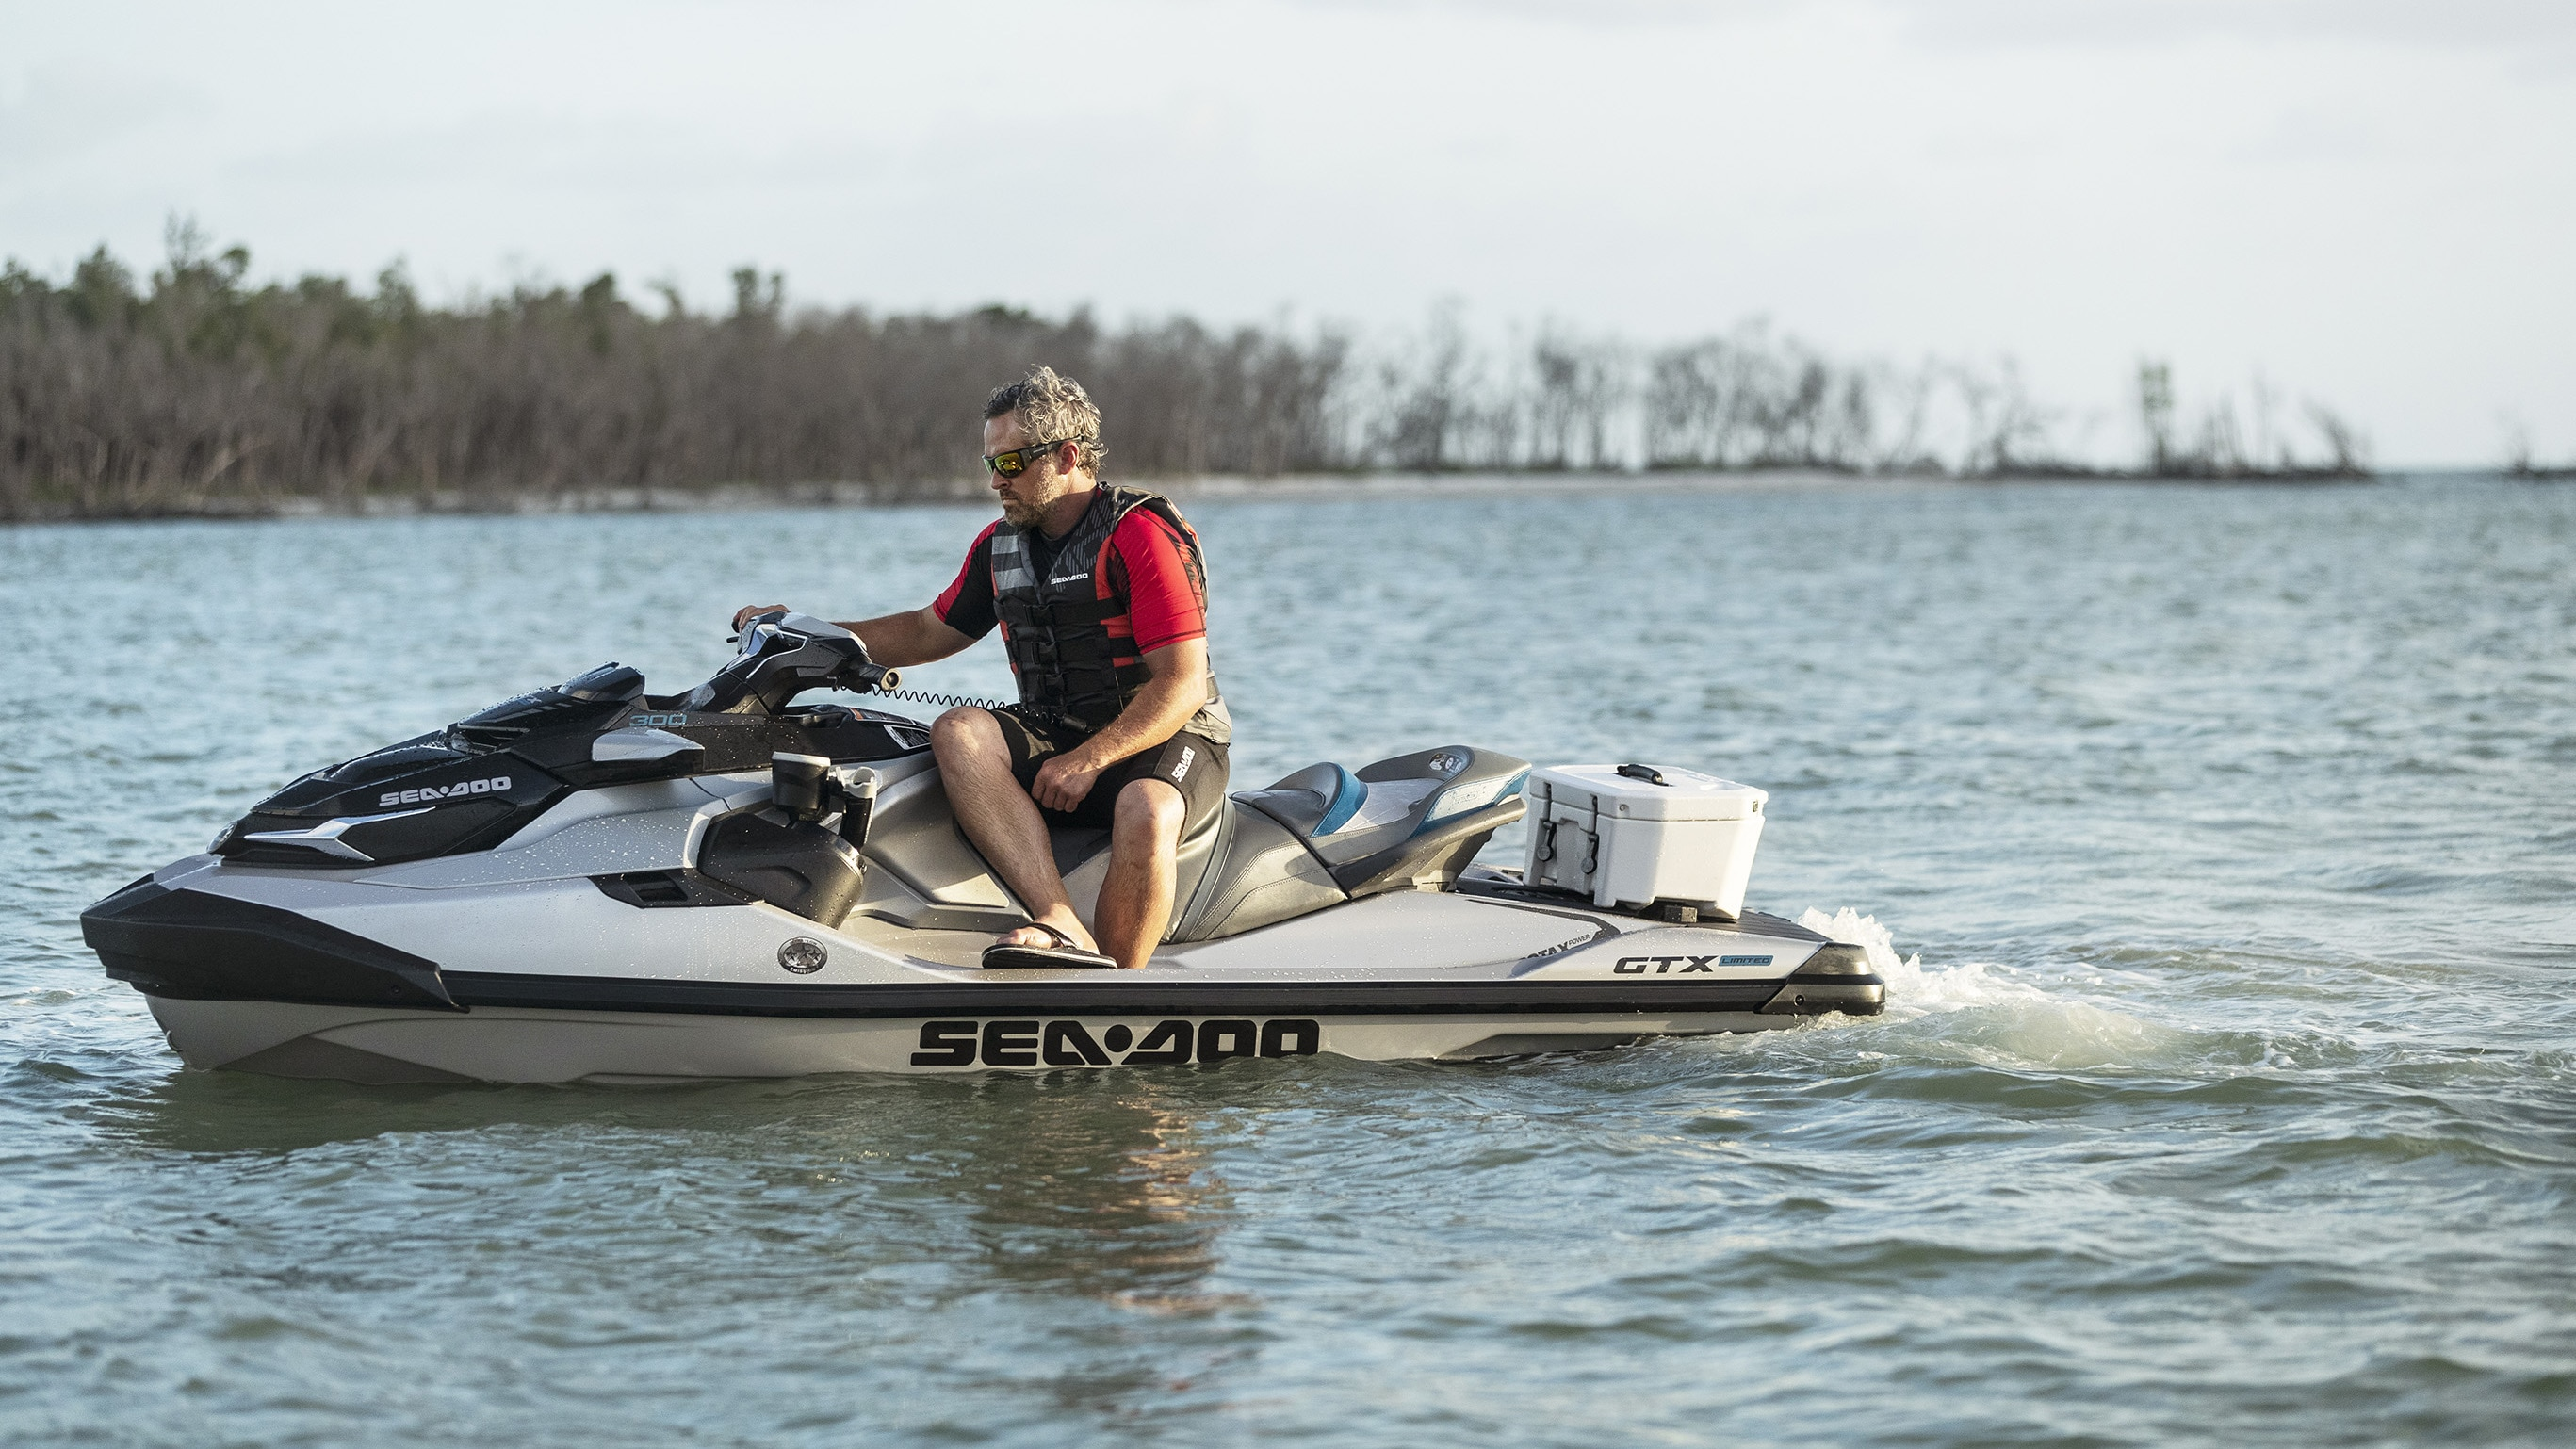 Man sitting on a Sea-Doo GTX with a LinQ box